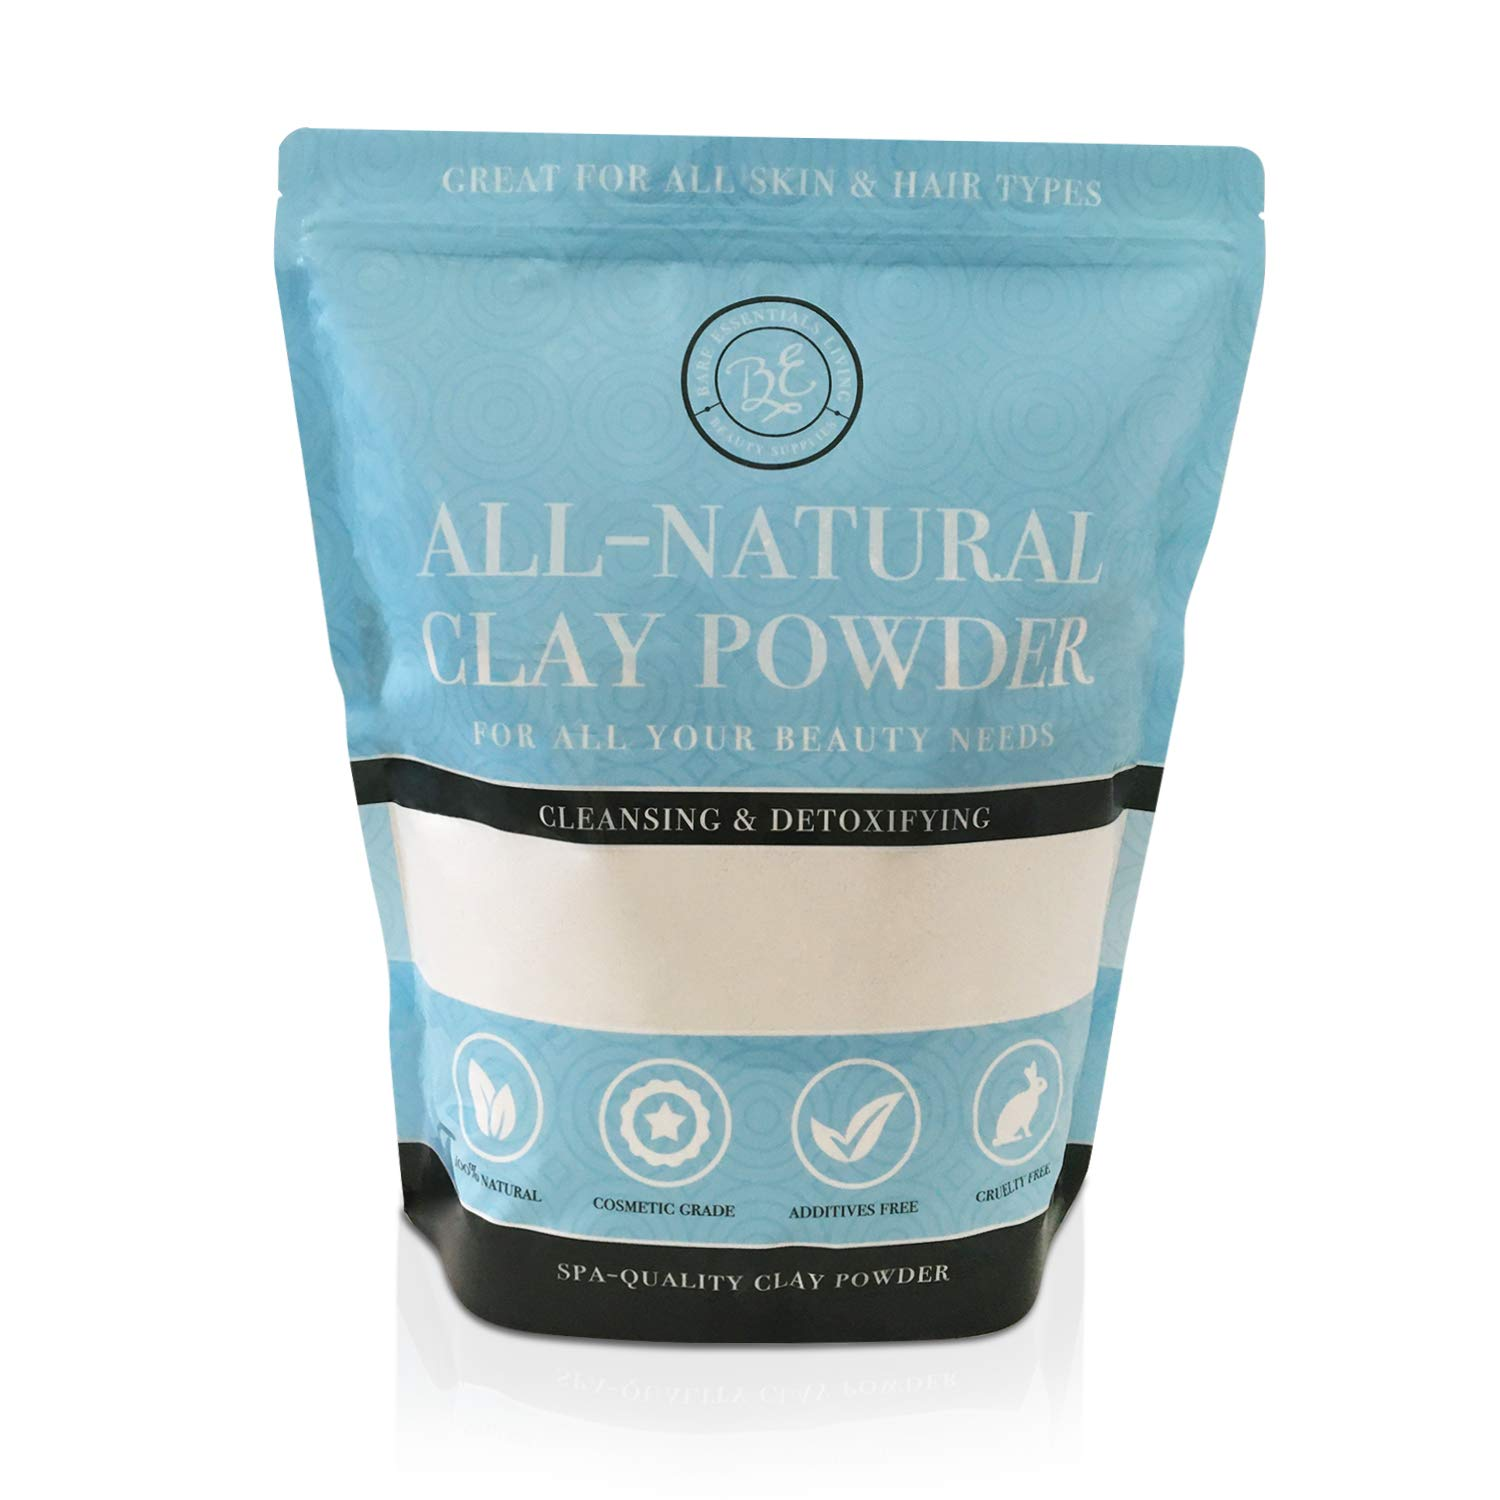 Kaolin White Clay 2 lb Powder, 100% natural for making DIY spa mud mask for face/facial, hair, body, soap, deodorant, bath bomb, setting makeup, lotion and gardening by Bare Essentials Living